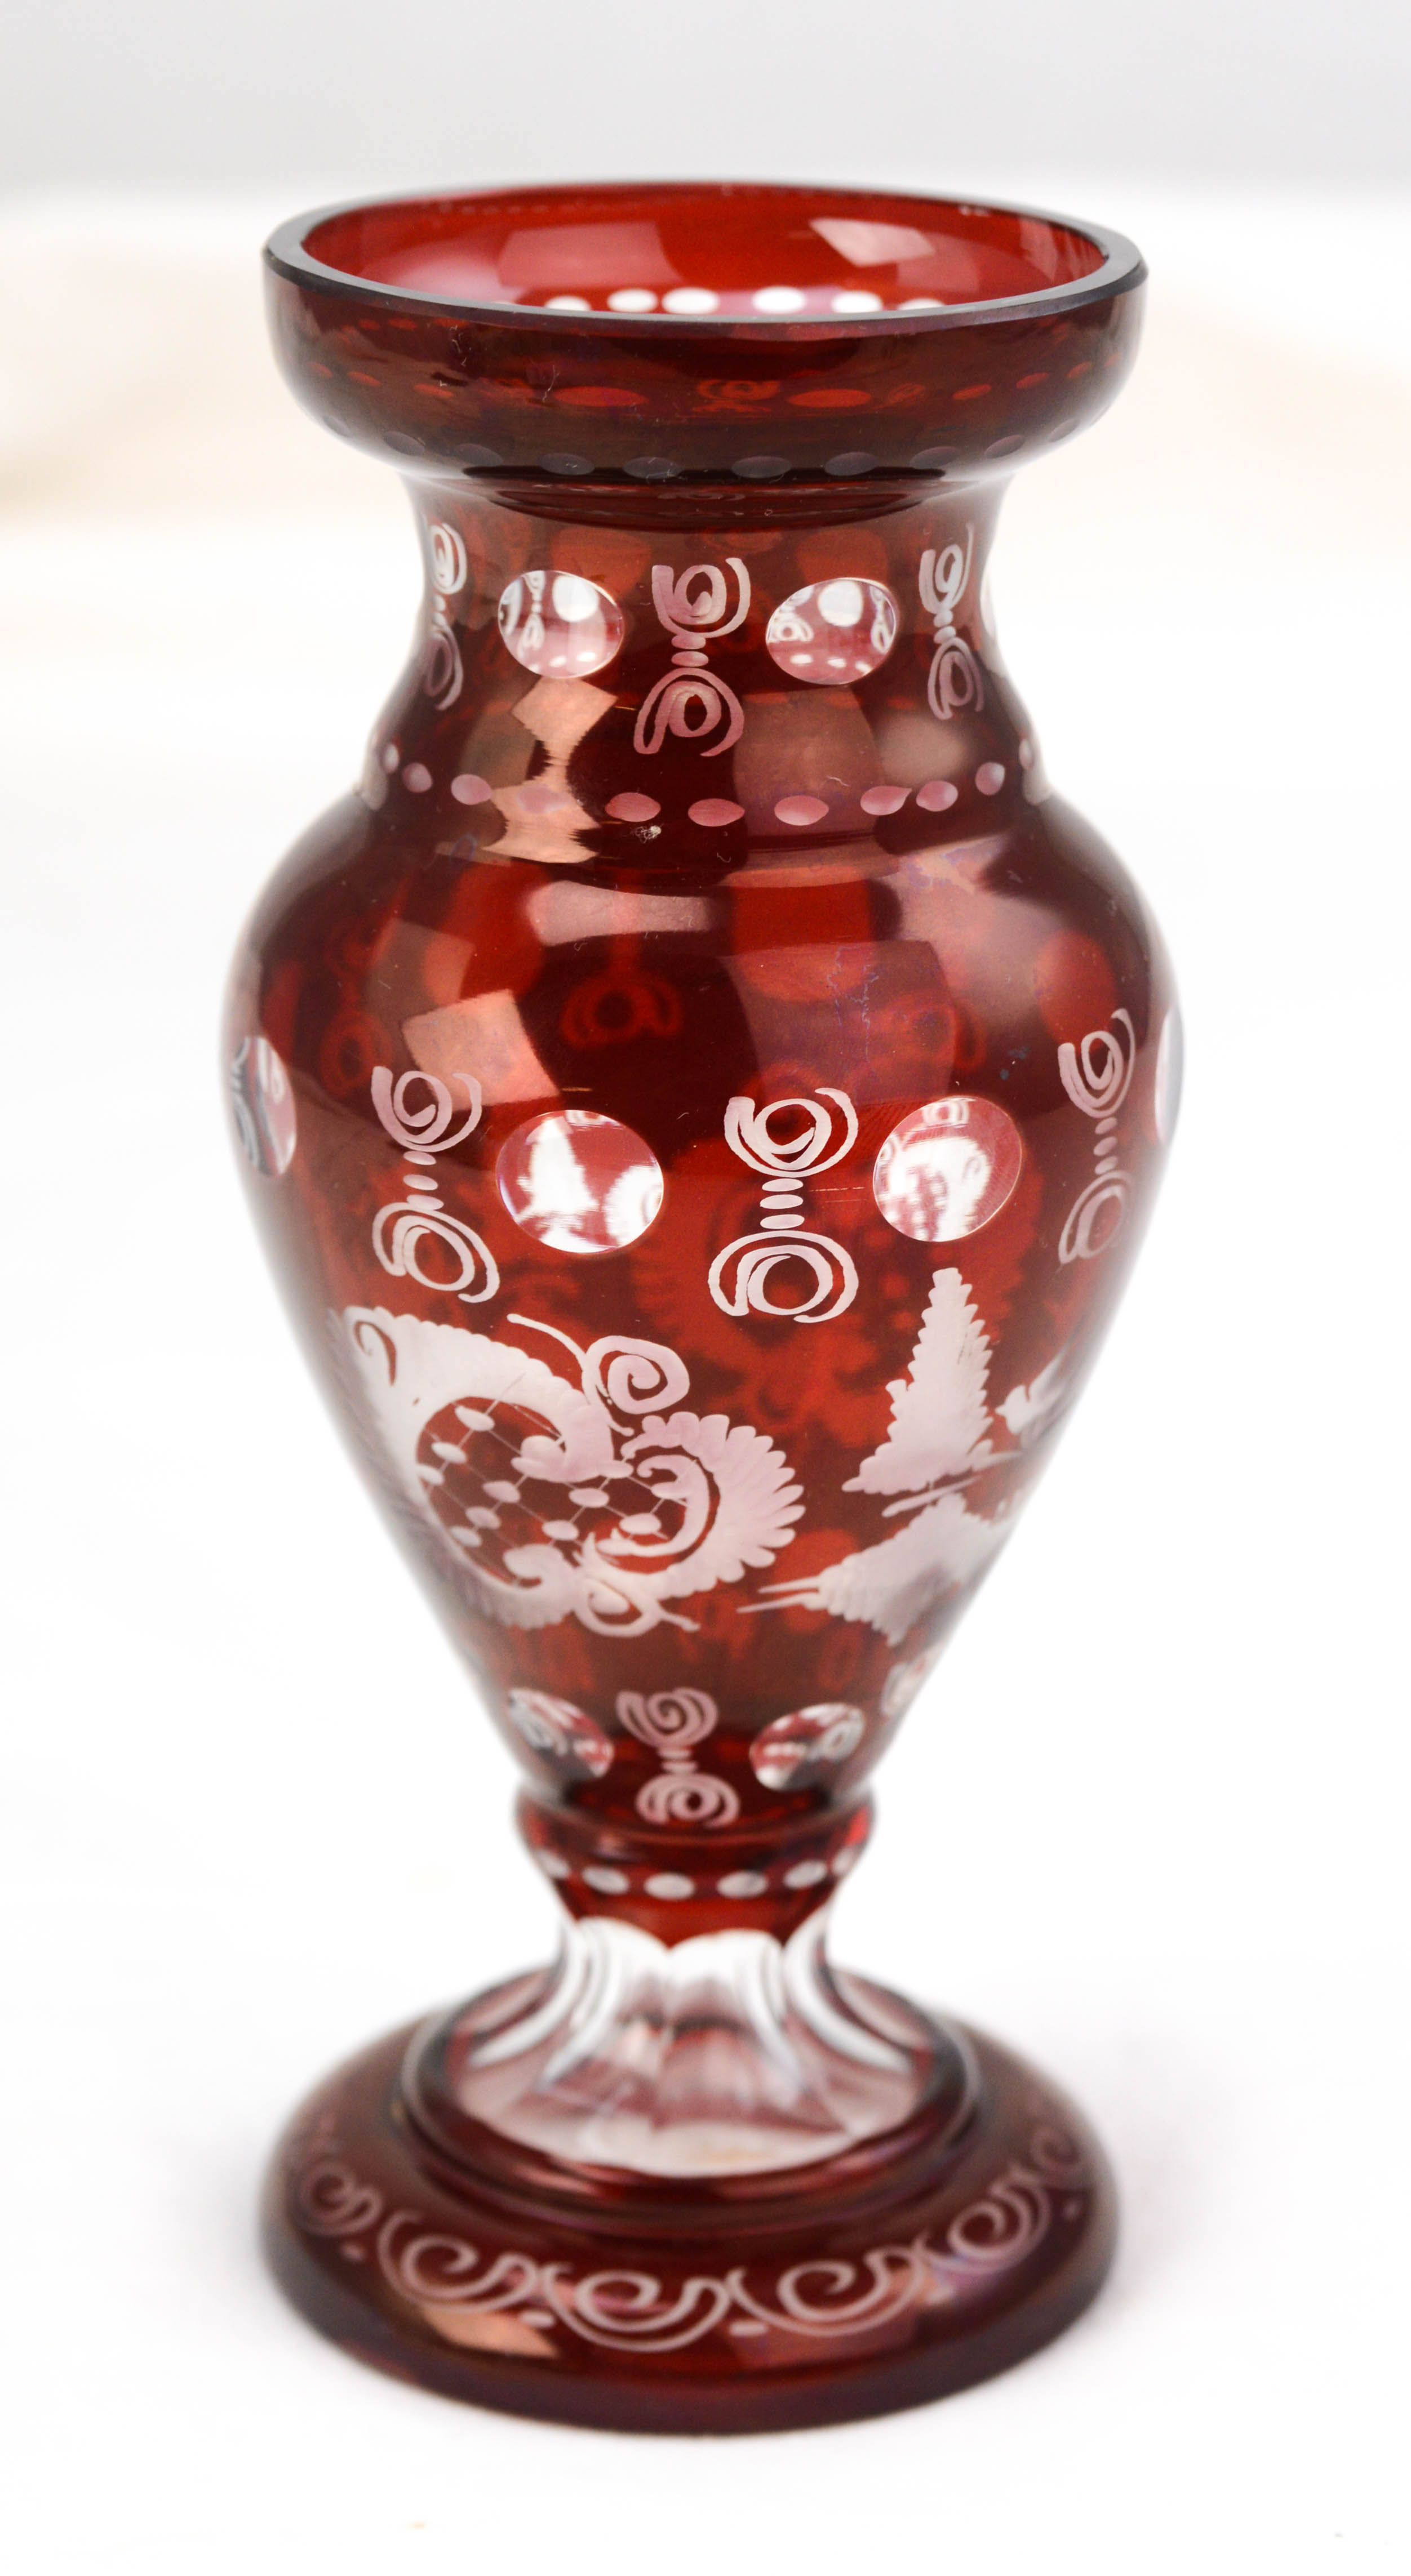 24 Stylish Wide Glass Vase 2021 free download wide glass vase of glass cylinder vases cheap fresh vtg bohemian egermann ruby red cut in glass cylinder vases cheap fresh vtg bohemian egermann ruby red cut to clear etched glass bird